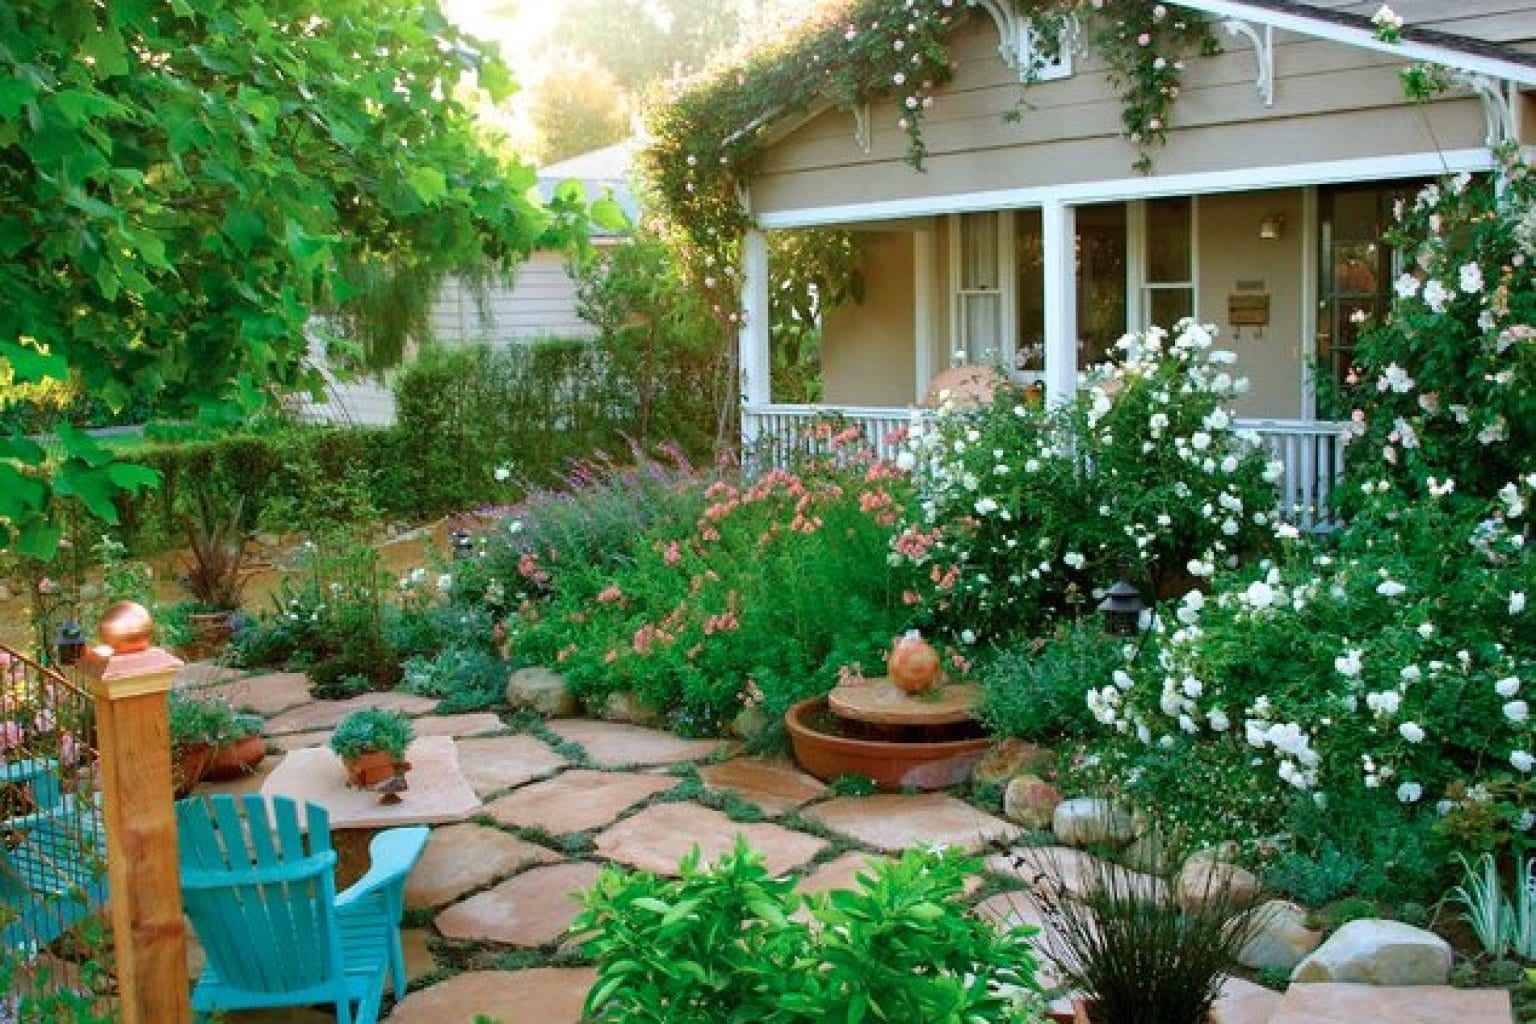 Cottage garden eine der beliebtesten gartenformen freshouse - Landscape design for small spaces style ...